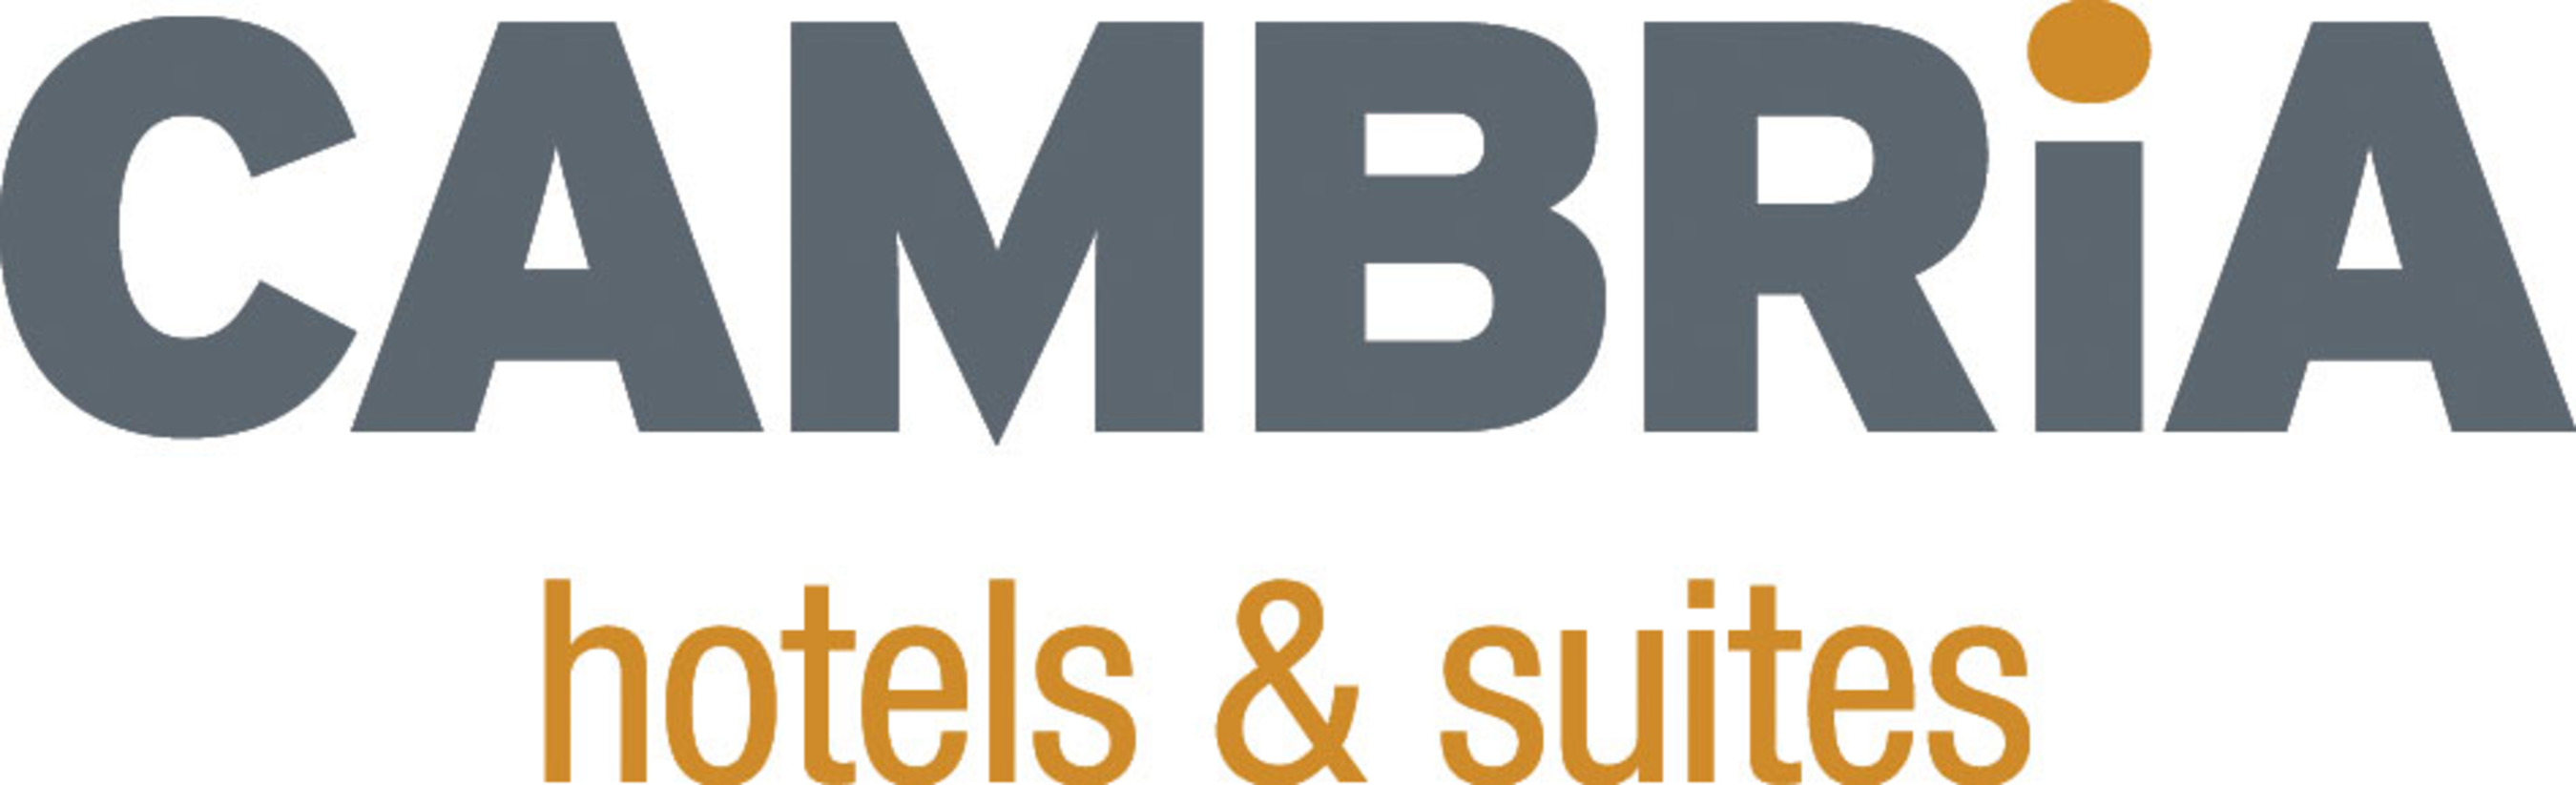 Cambria Hotels Suites New Logo